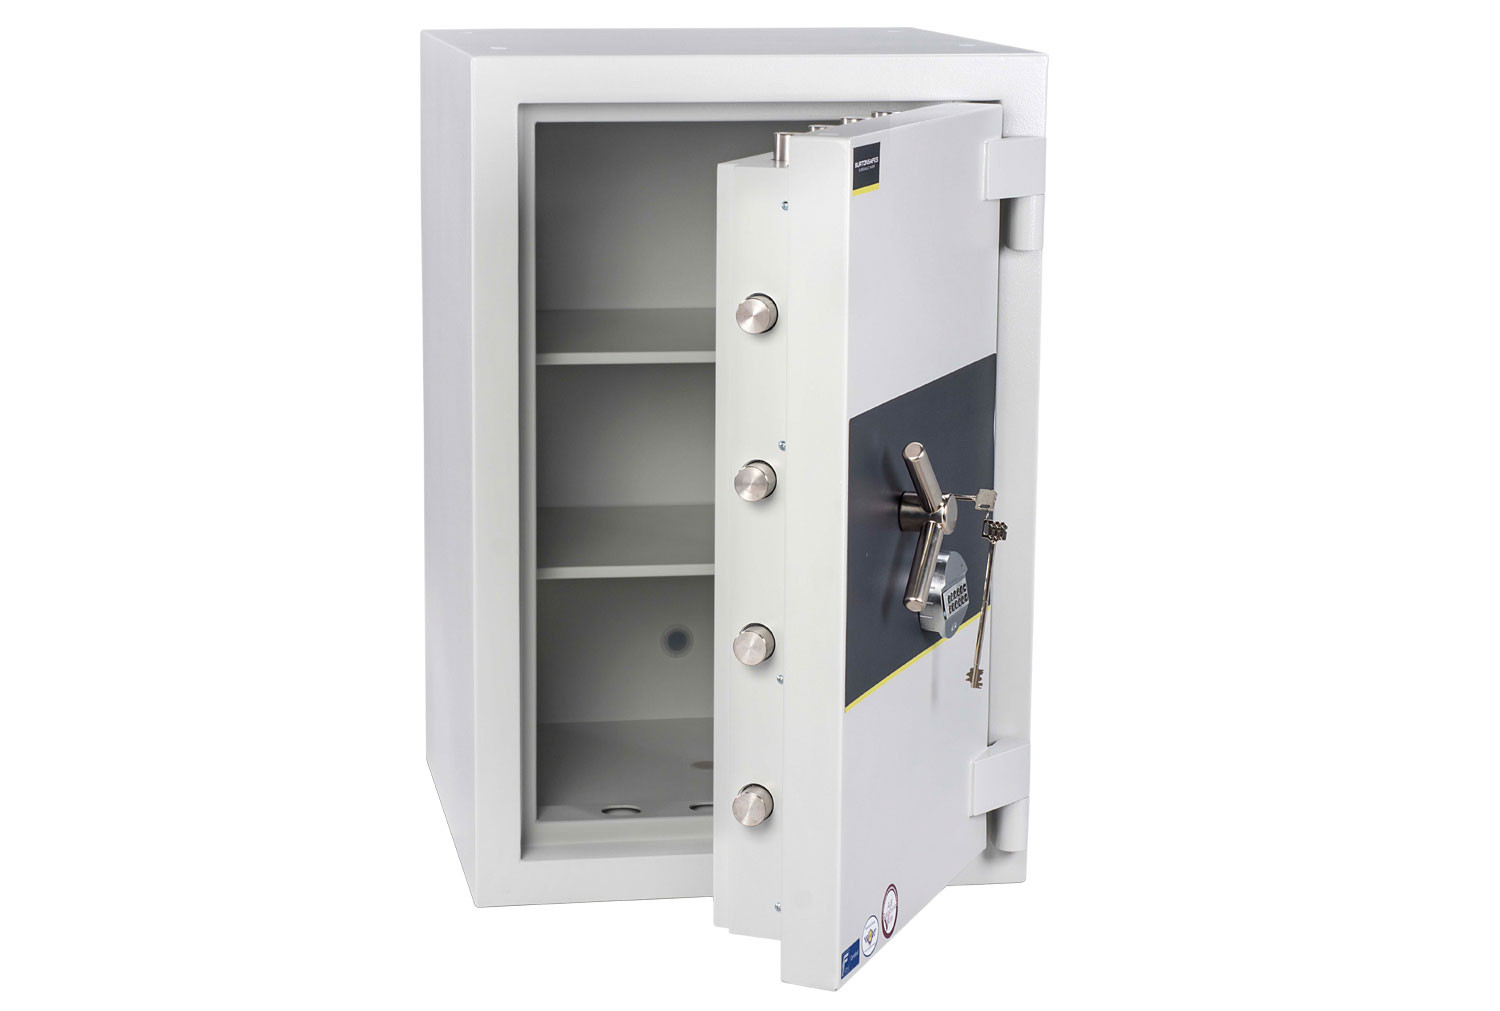 Burton Eurovault Aver Grade 5 Size 3 Safe With Dual Key And Electronic Lock (203ltrs)